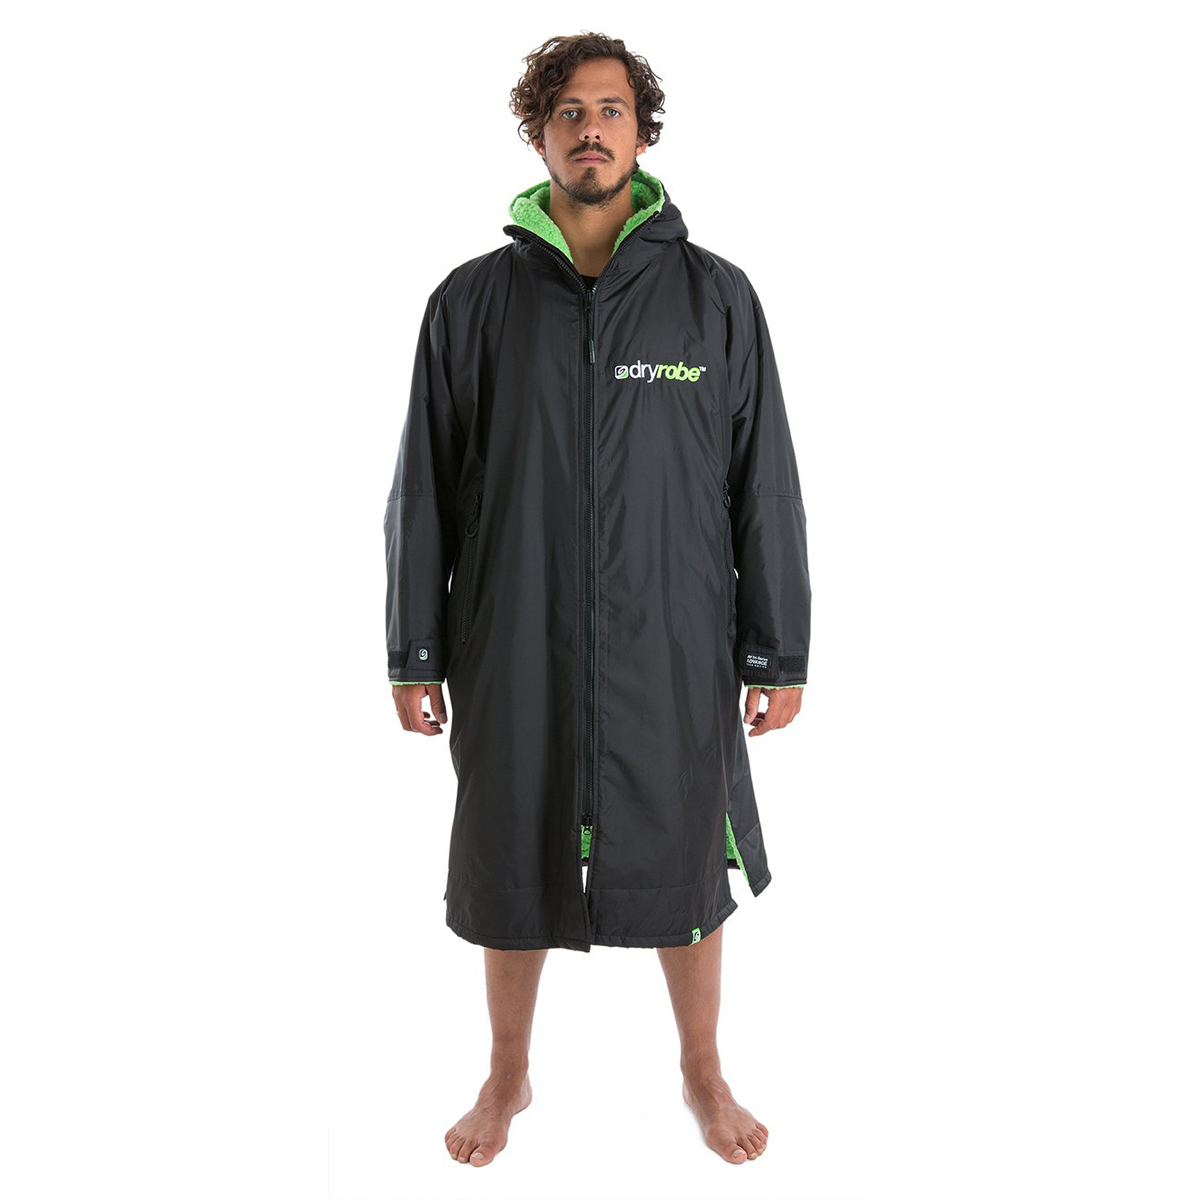 c615f92d6a Dryrobe Advance Long Sleeve Outdoor Change Robe - Tri Accessories    Swimwear - Cycle SuperStore